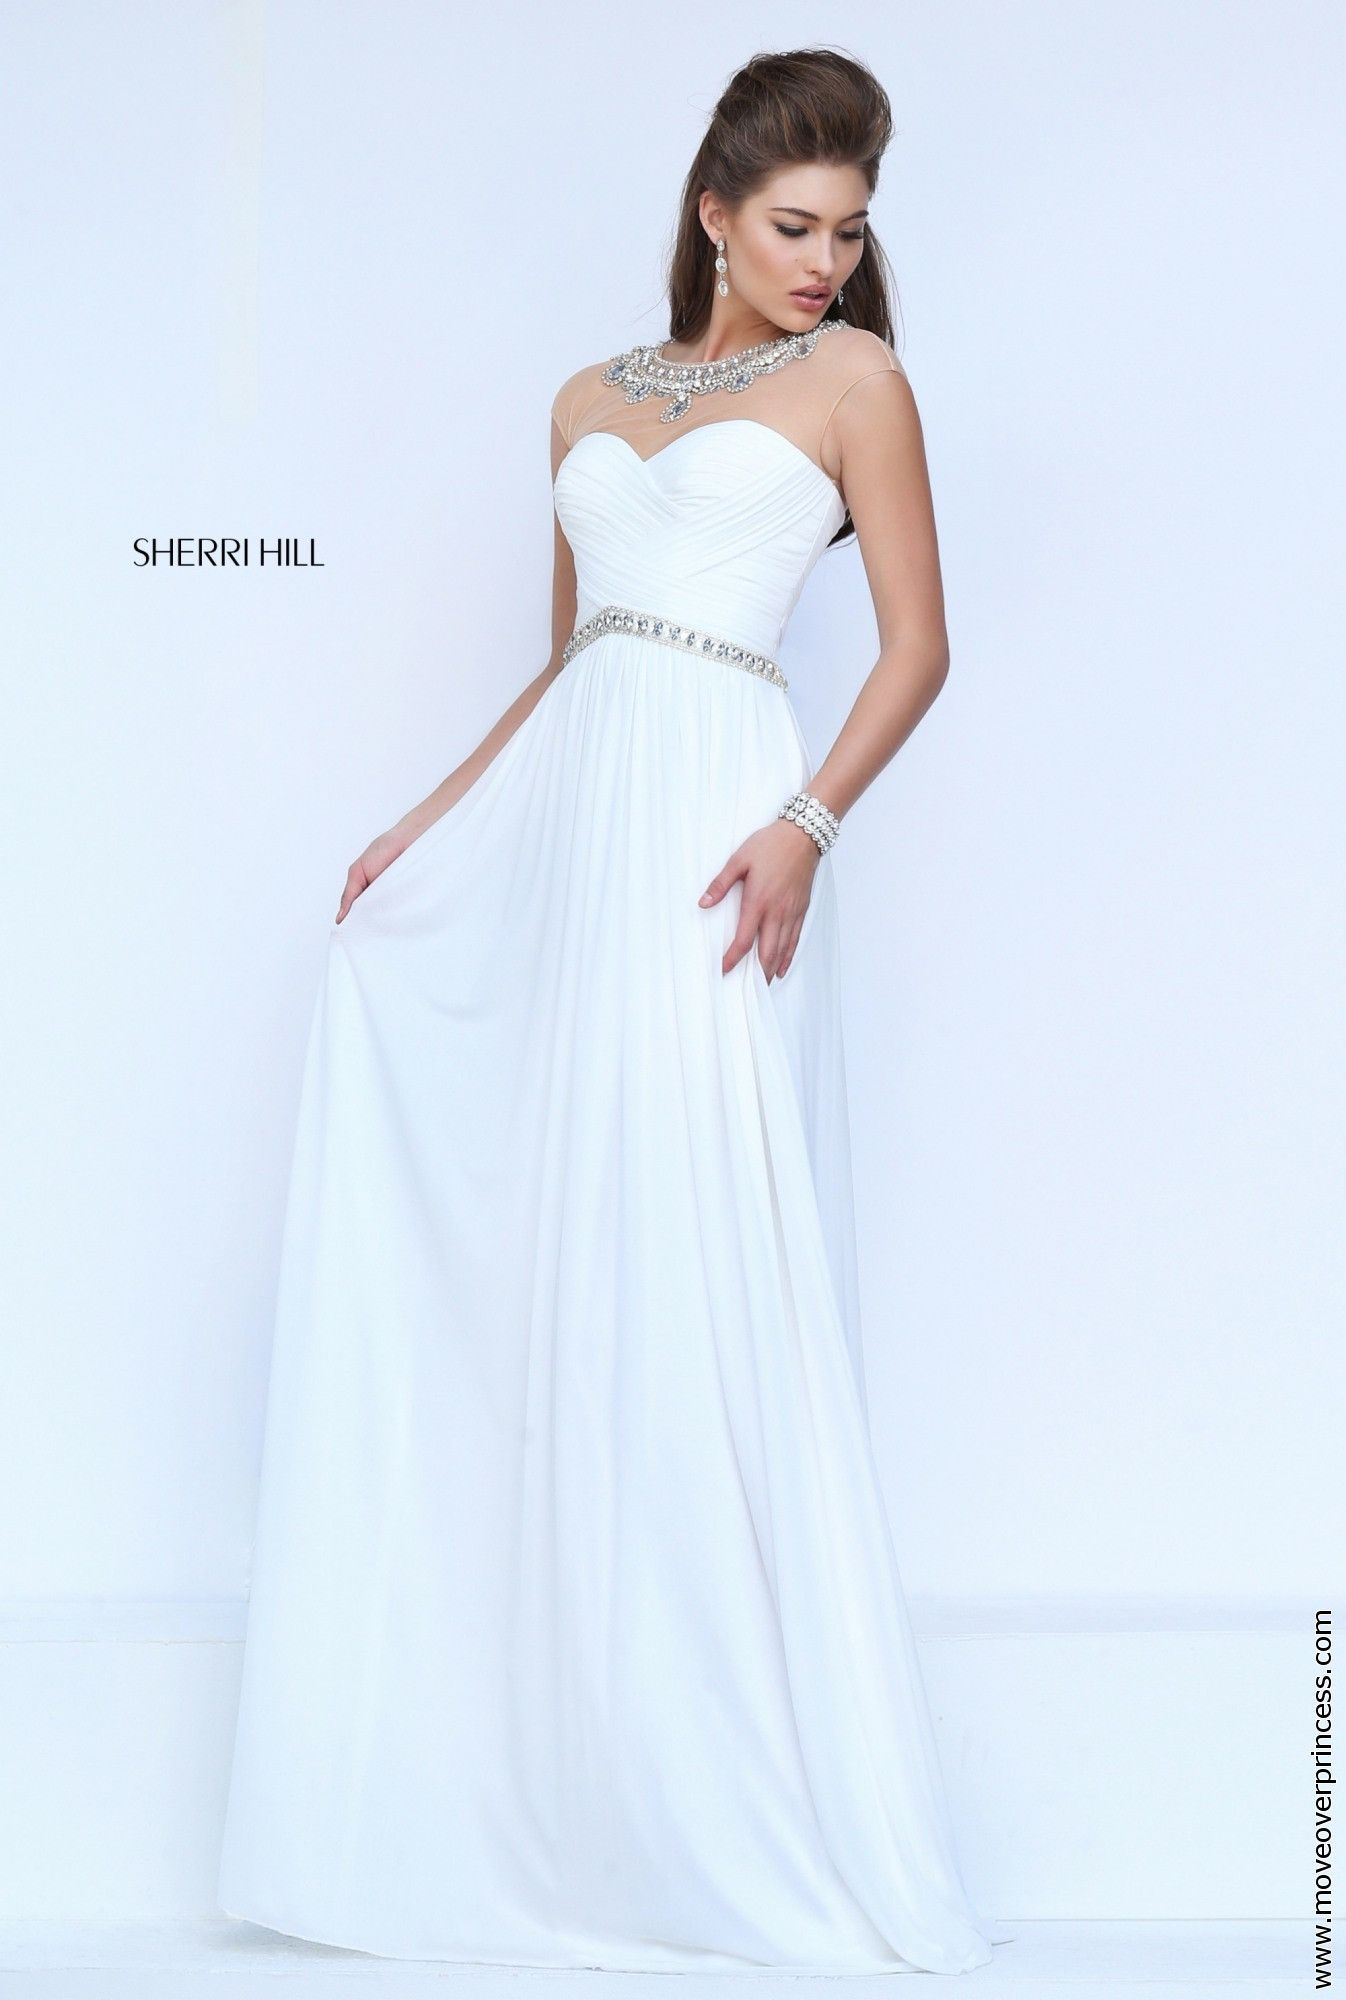 Sherri hill prom pinterest prom prom boutiques and